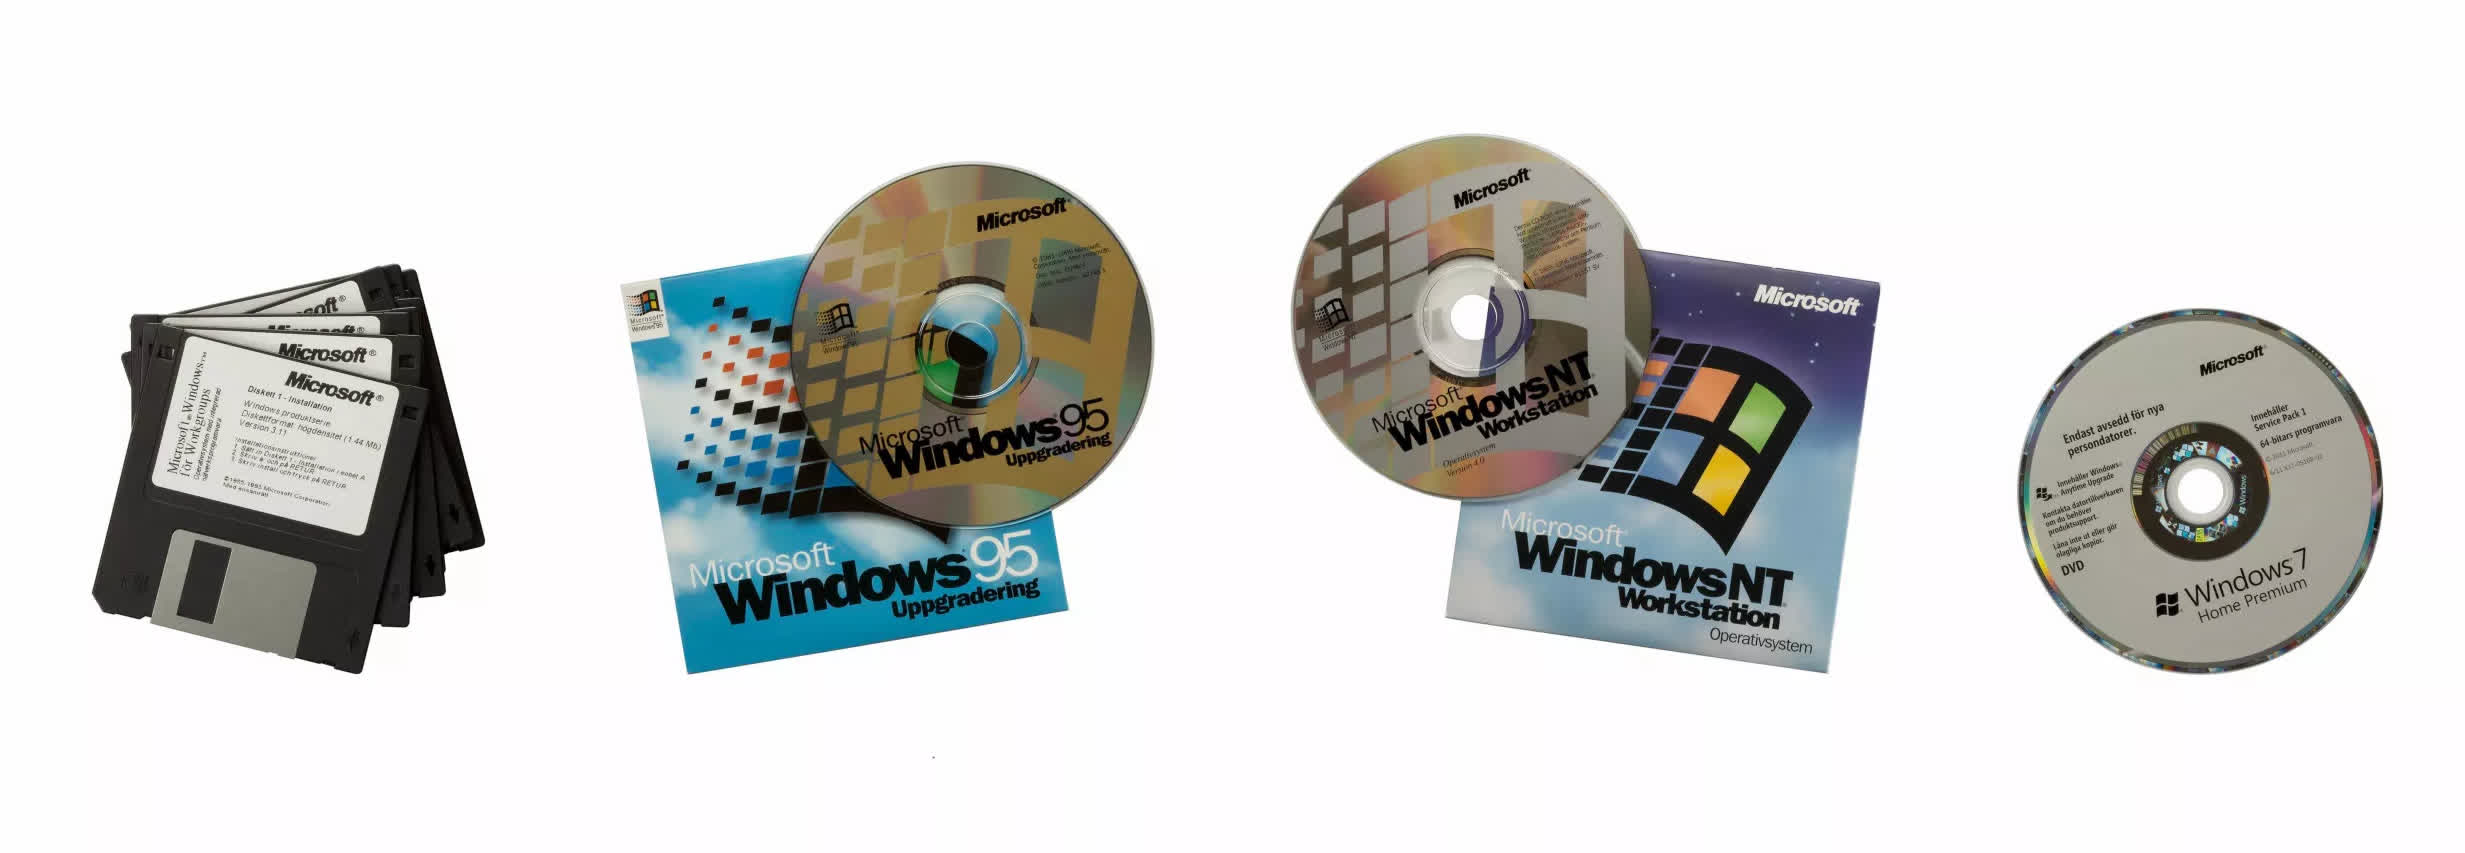 , Today marks 35 years of Windows